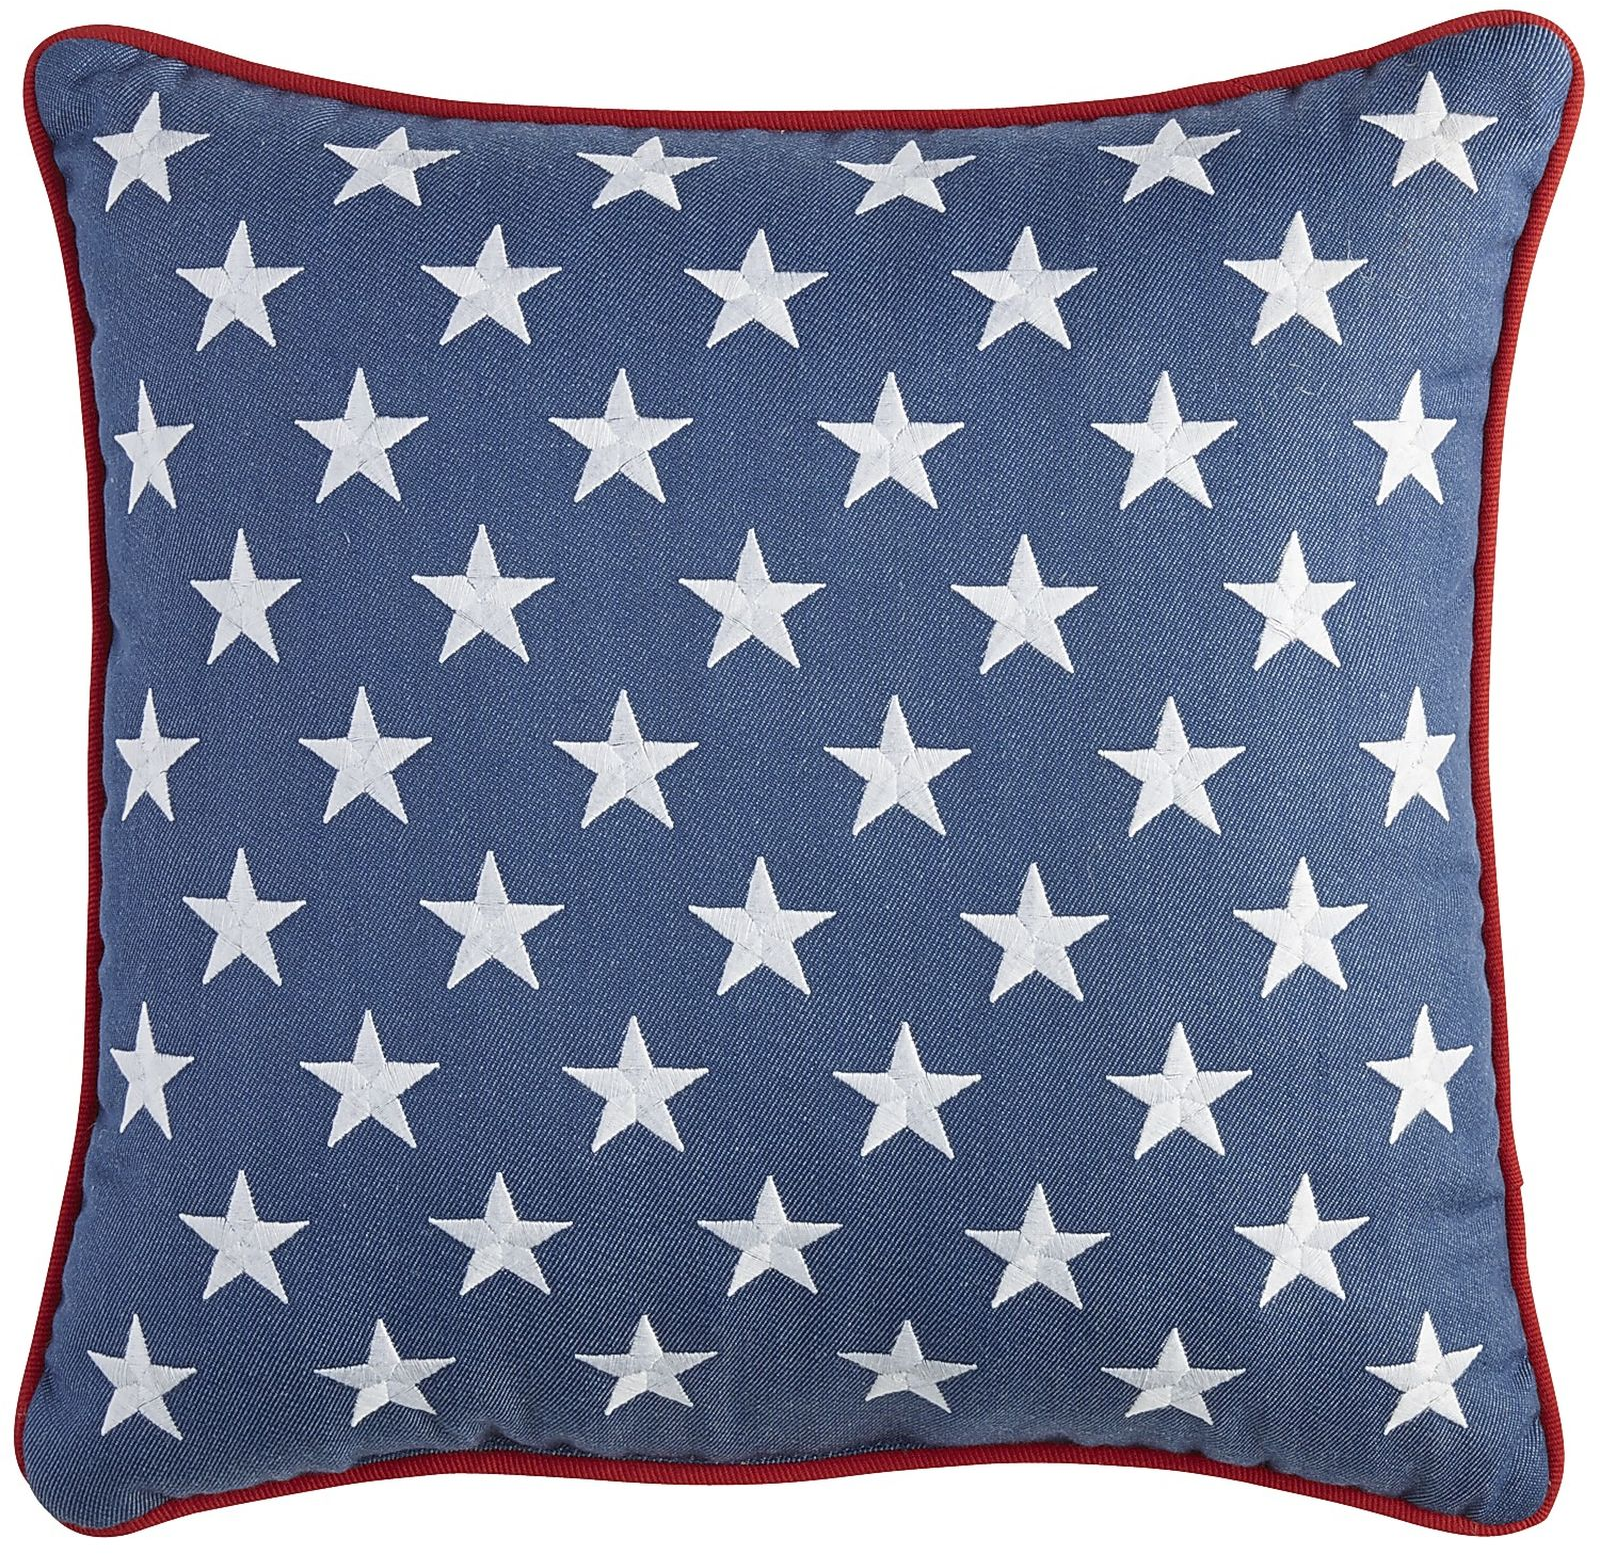 Stars Embroidered PIllow - Denim | Pier 1 Imports